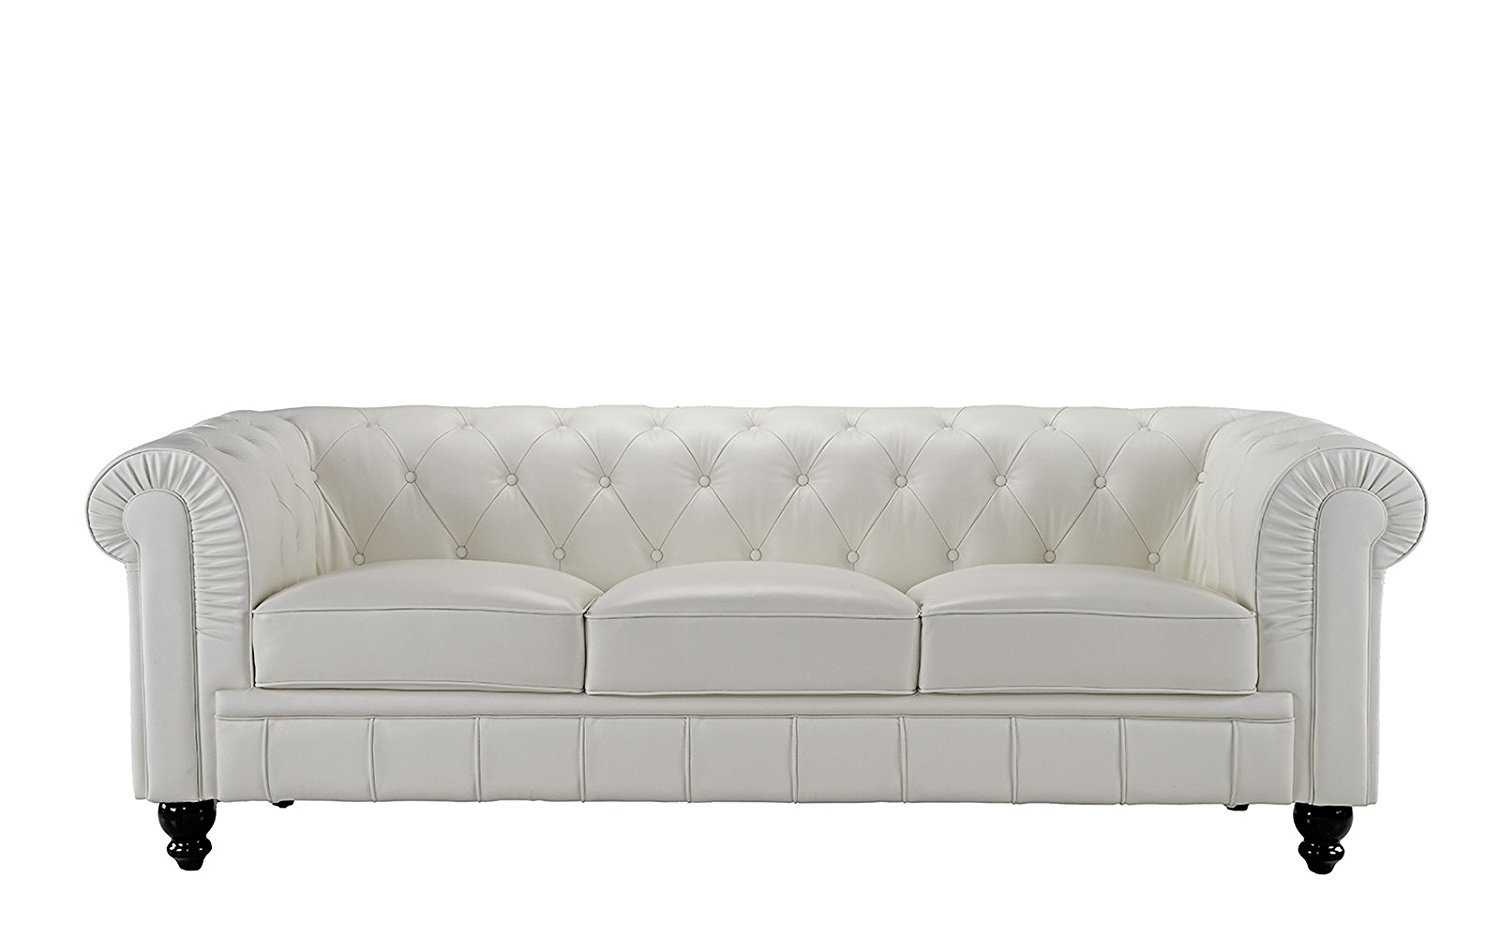 Classic Scroll Arm Real Leather Chesterfield Sofa Off White